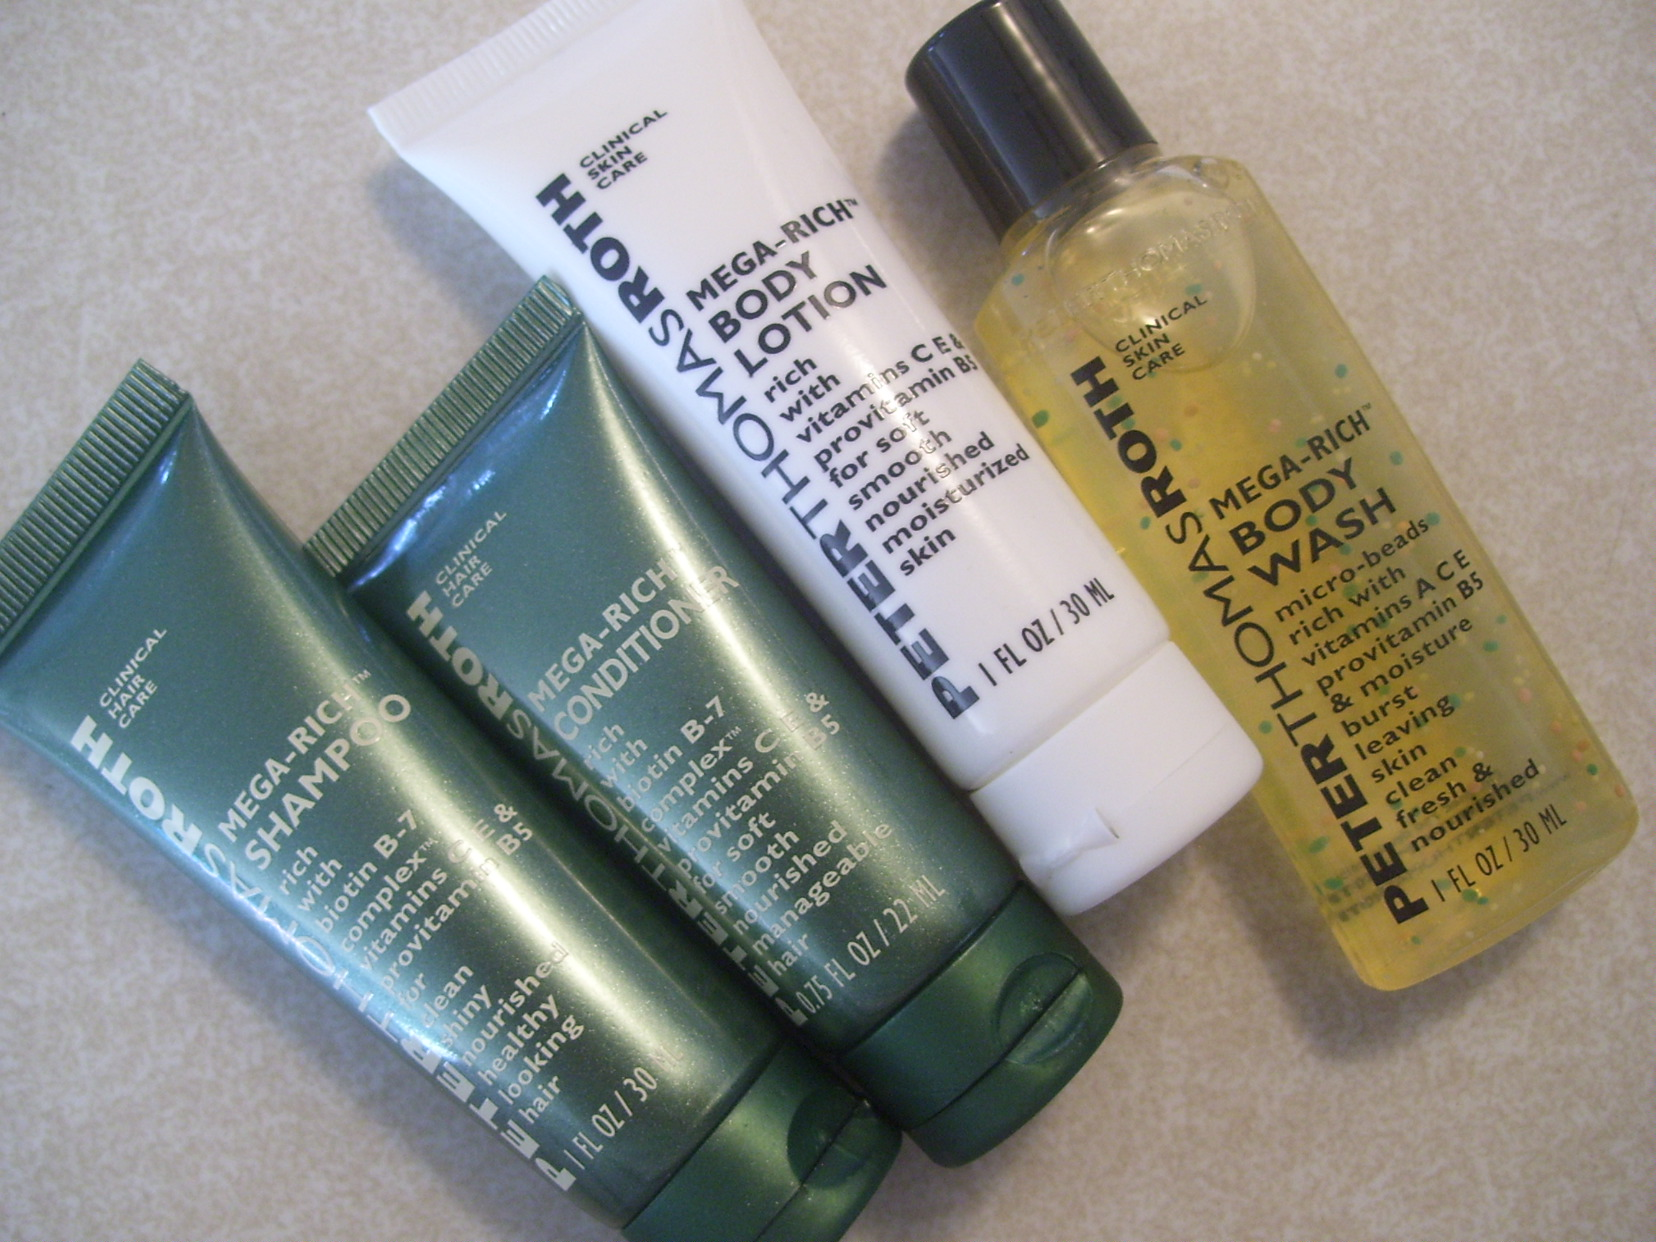 Peter Thomas Roth's Mega-Rich Body Collection